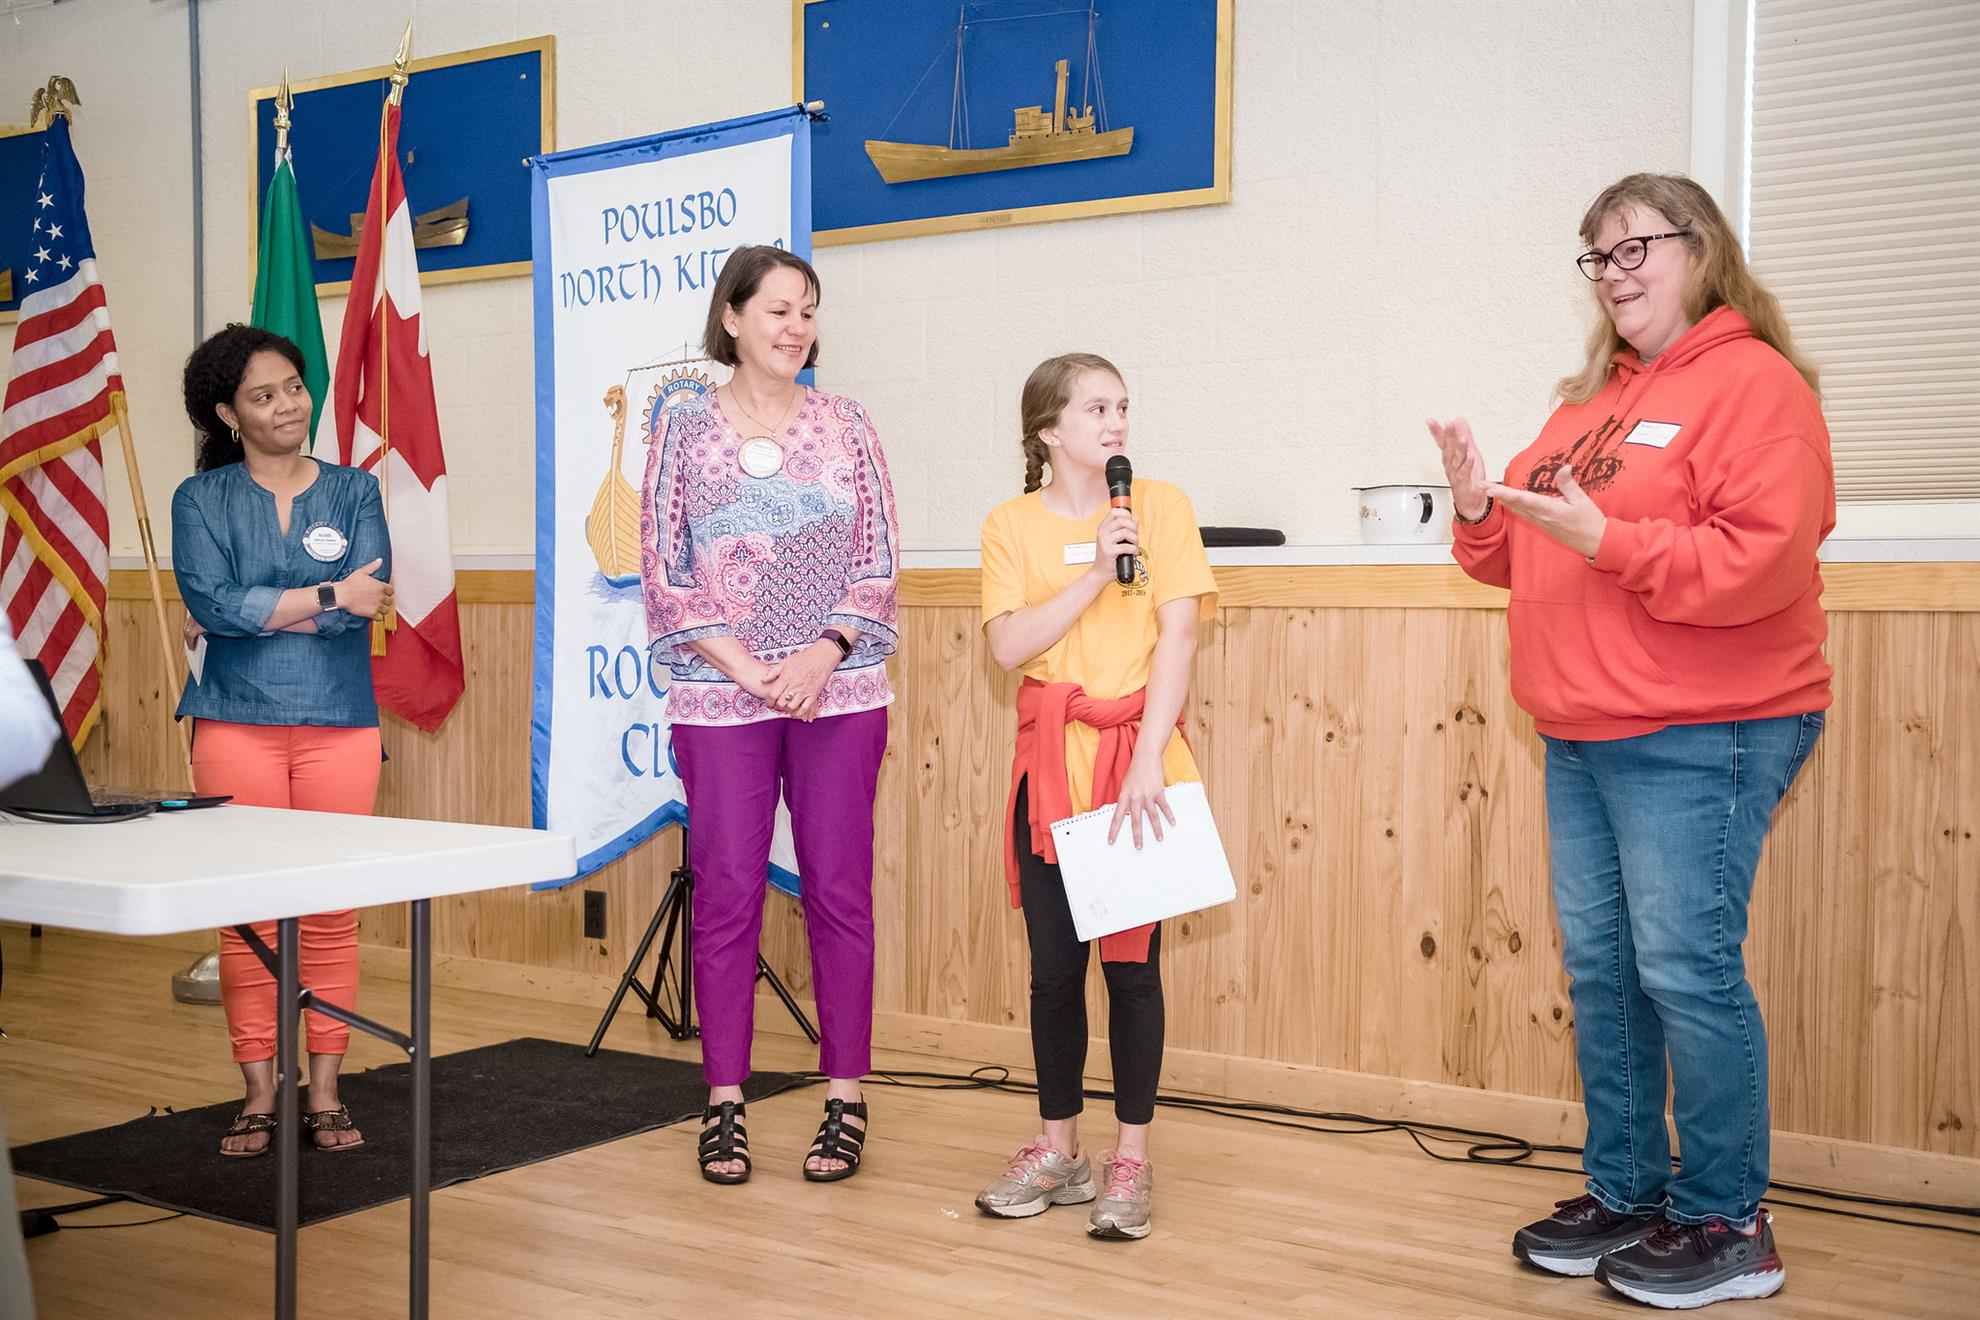 Stories Rotary Club Of Poulsbo North Kitsap Old Circuit Board United Kingdom Flag Tshirt Check Presentations